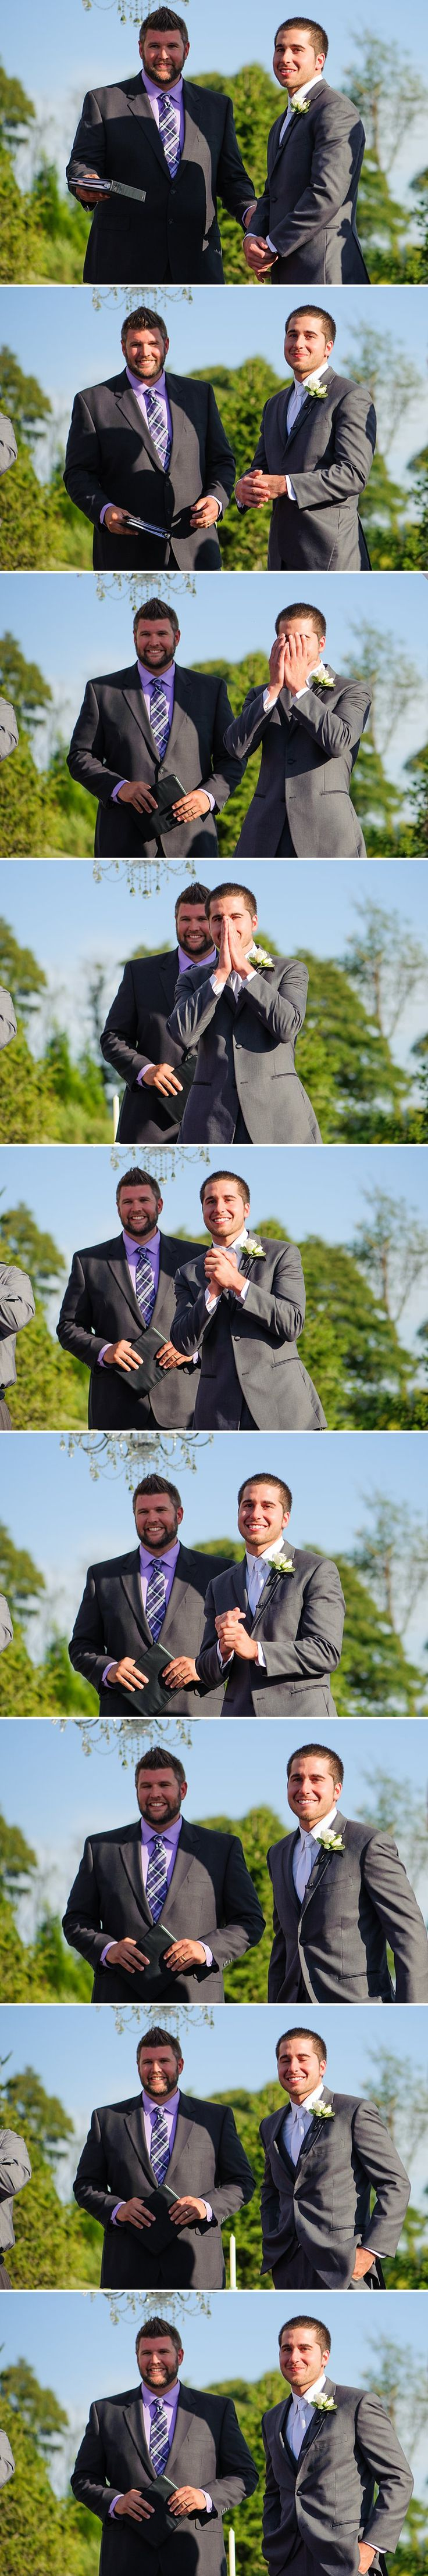 Kimberly Brooke Photography | BEST GROOM REACTION EVER to bride coming down aisle!!!